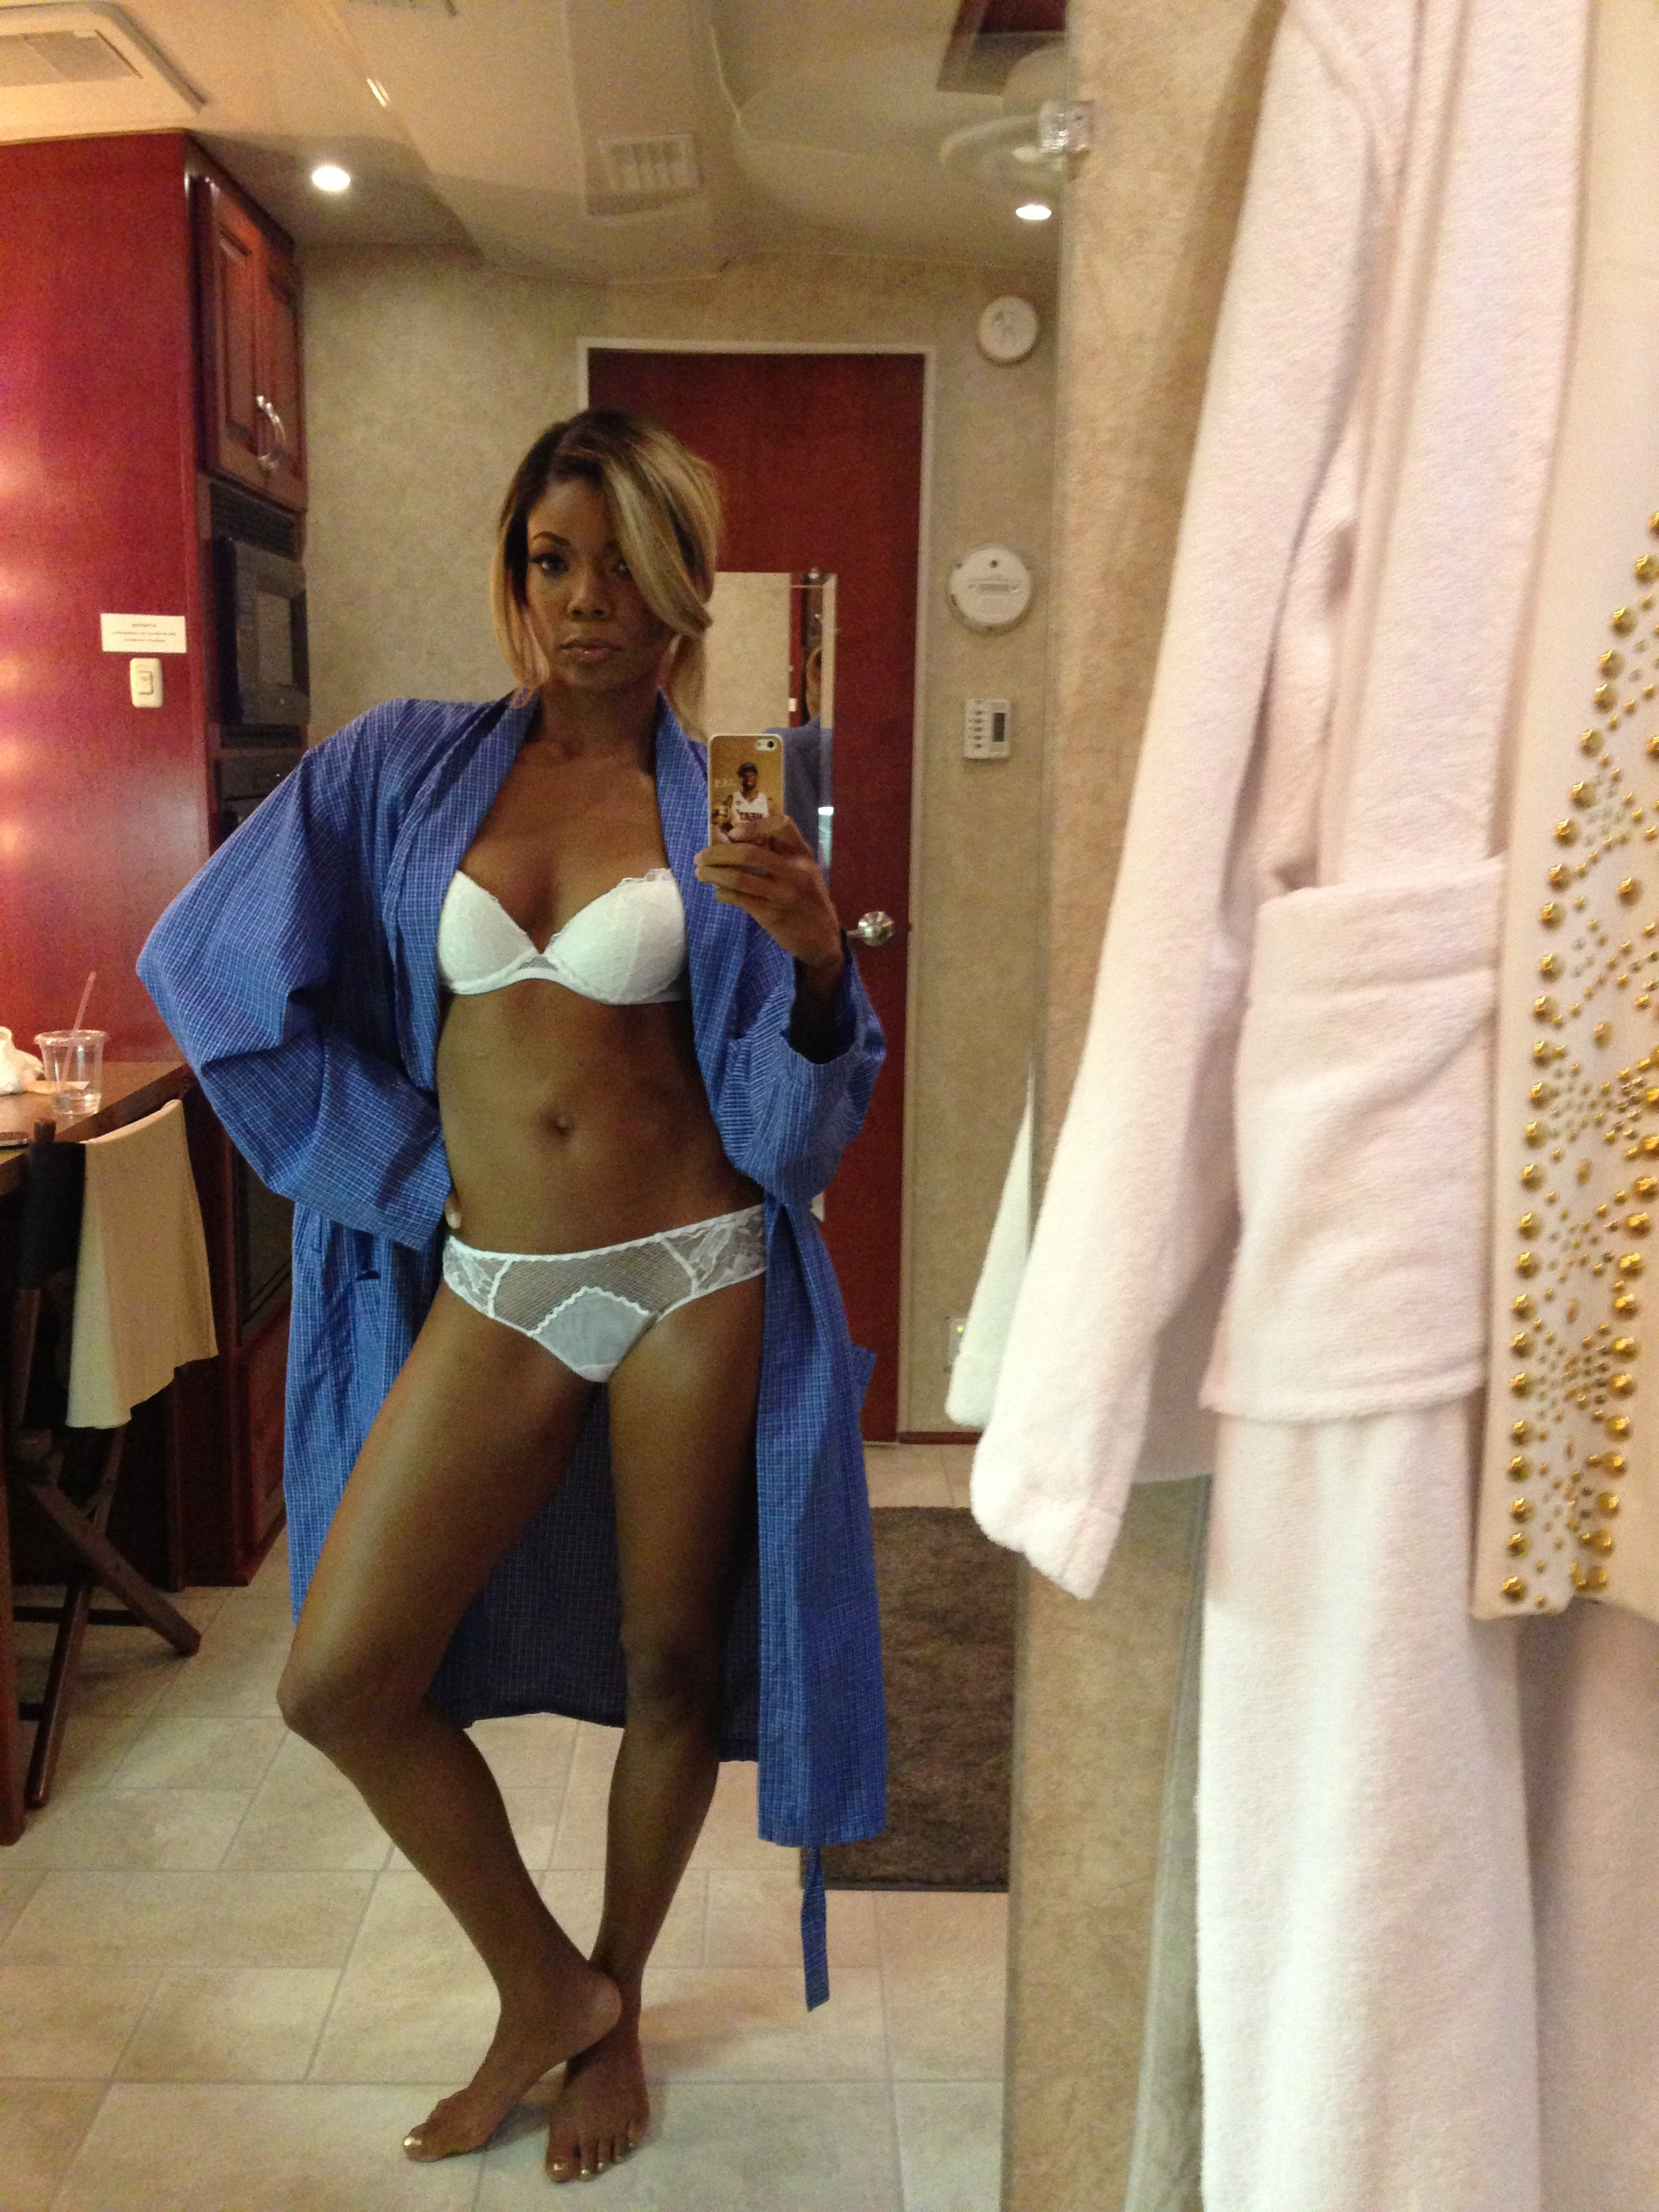 gabrielle union leaked naked photos